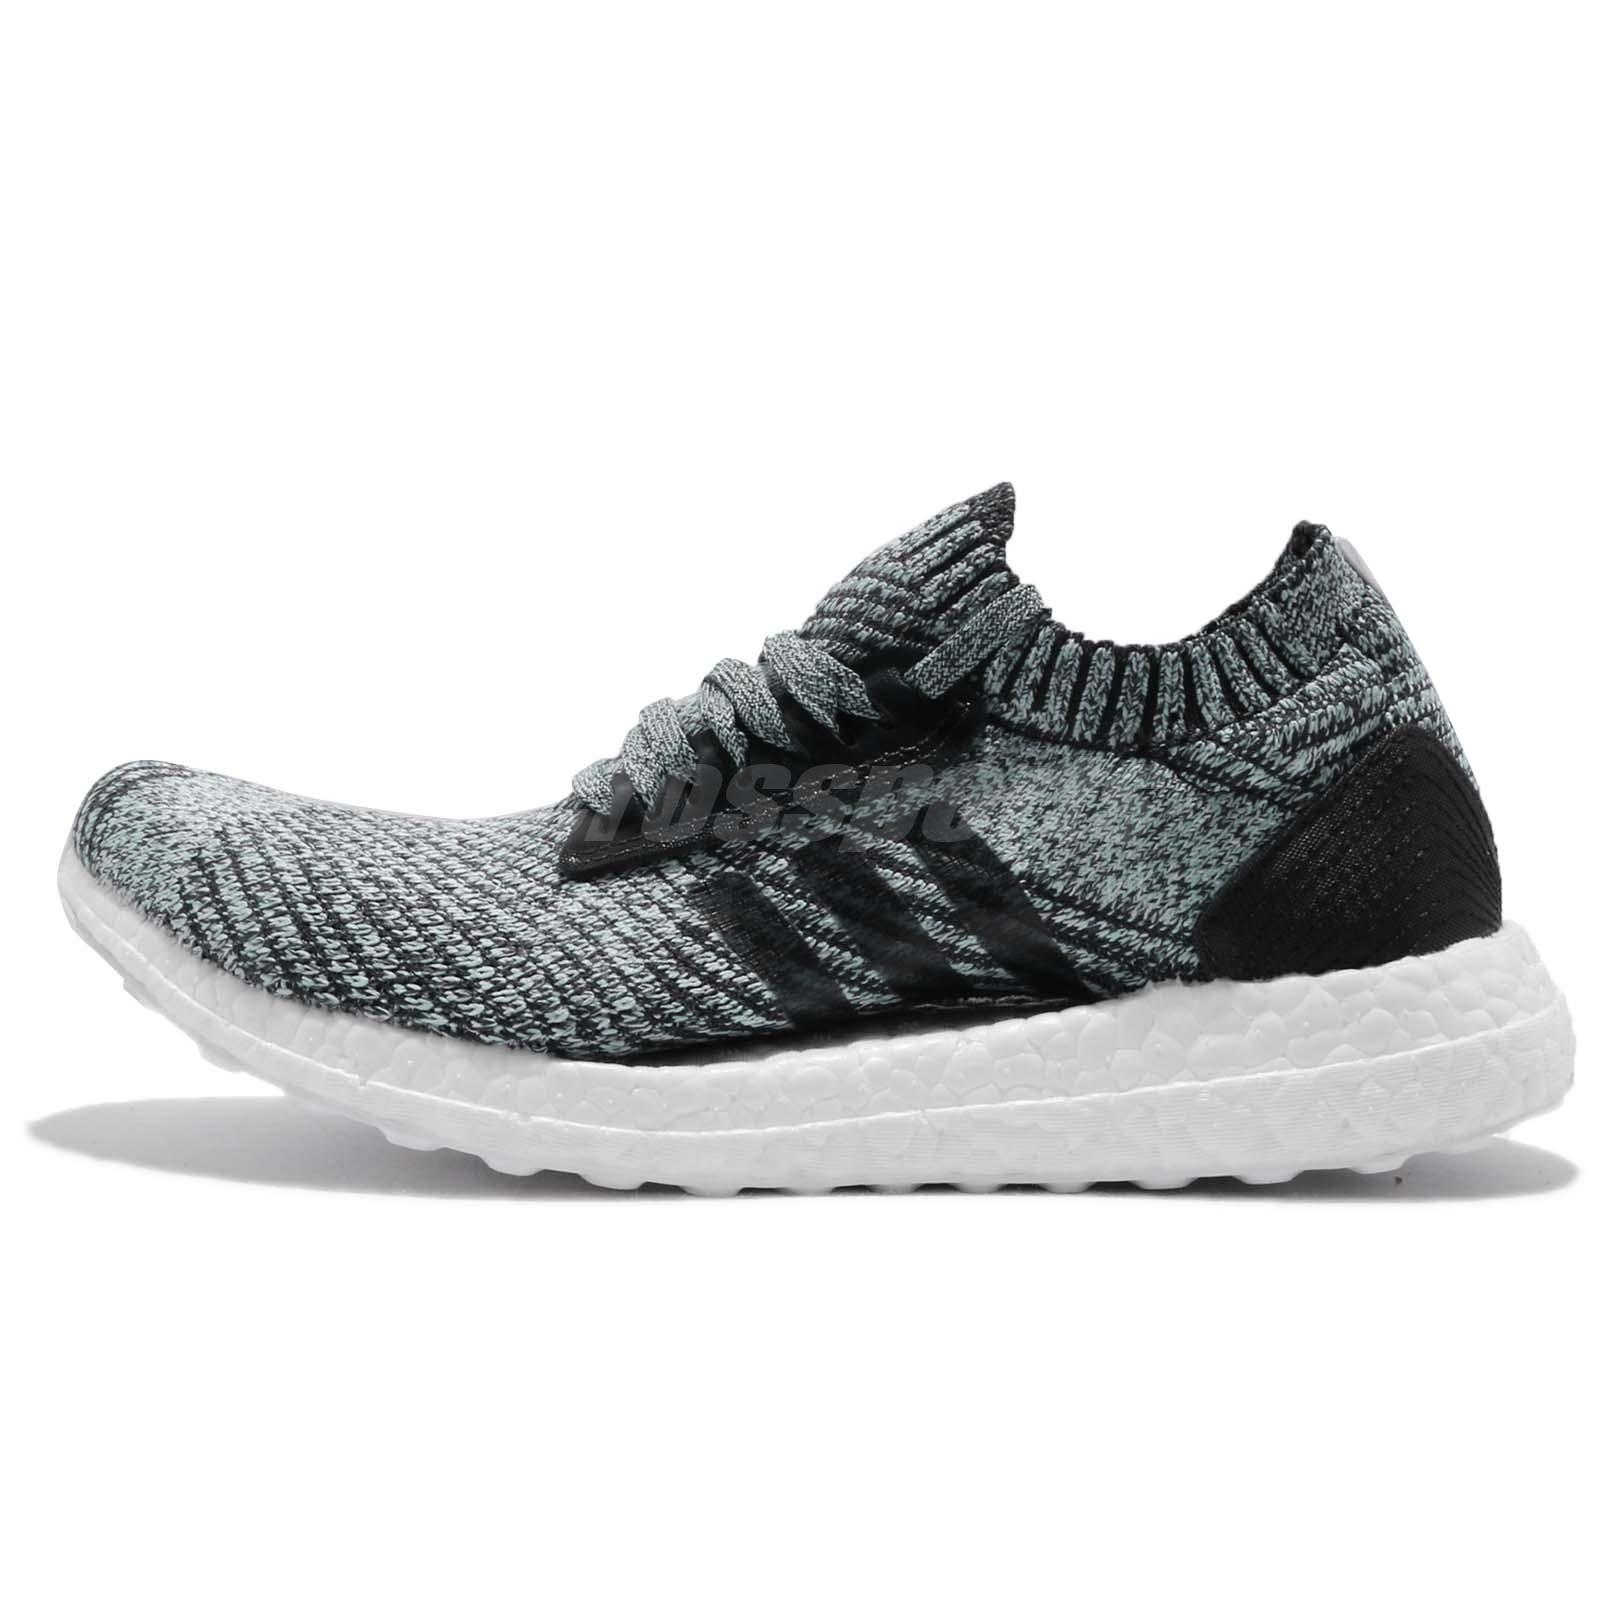 Parley For The Oceans x adidas Ultra Boost X CarbonCarbon Blau DB0641